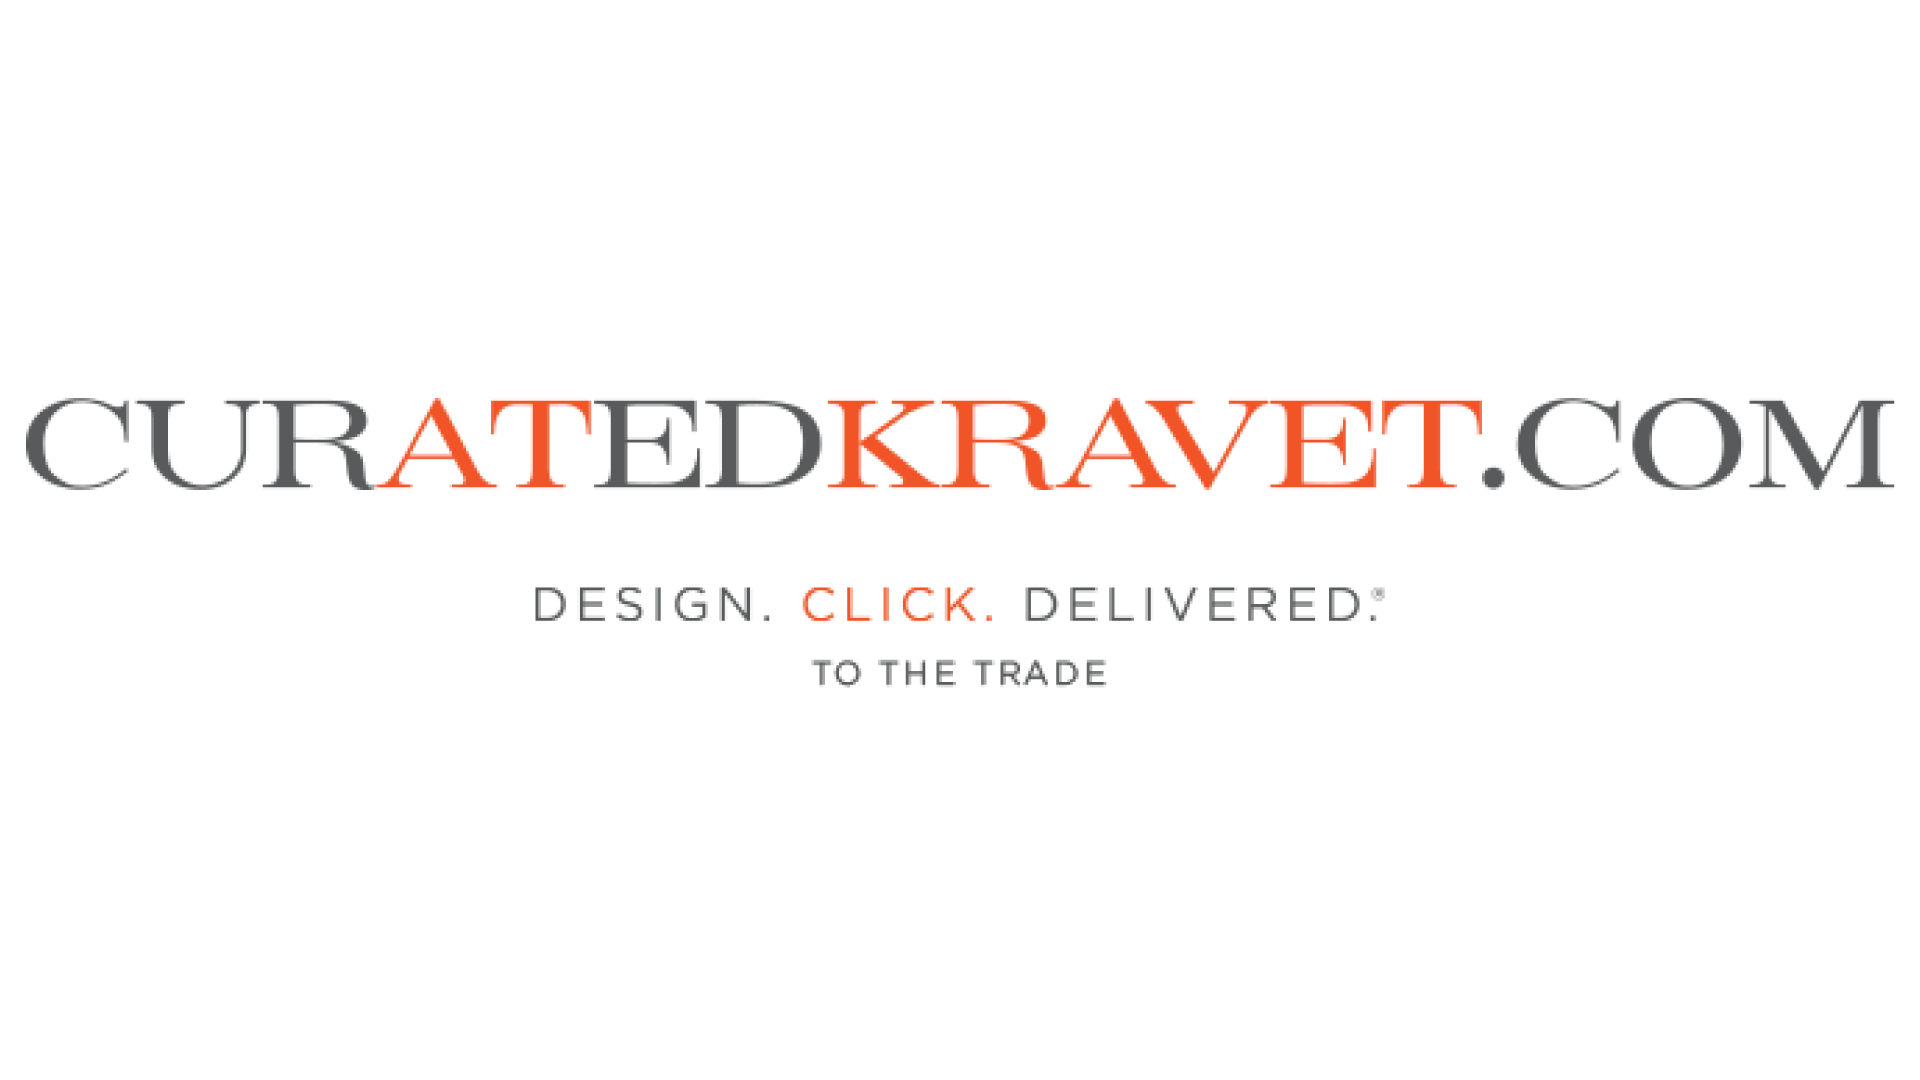 Curated KRAVET - https://www.curatedkravet.com/us/